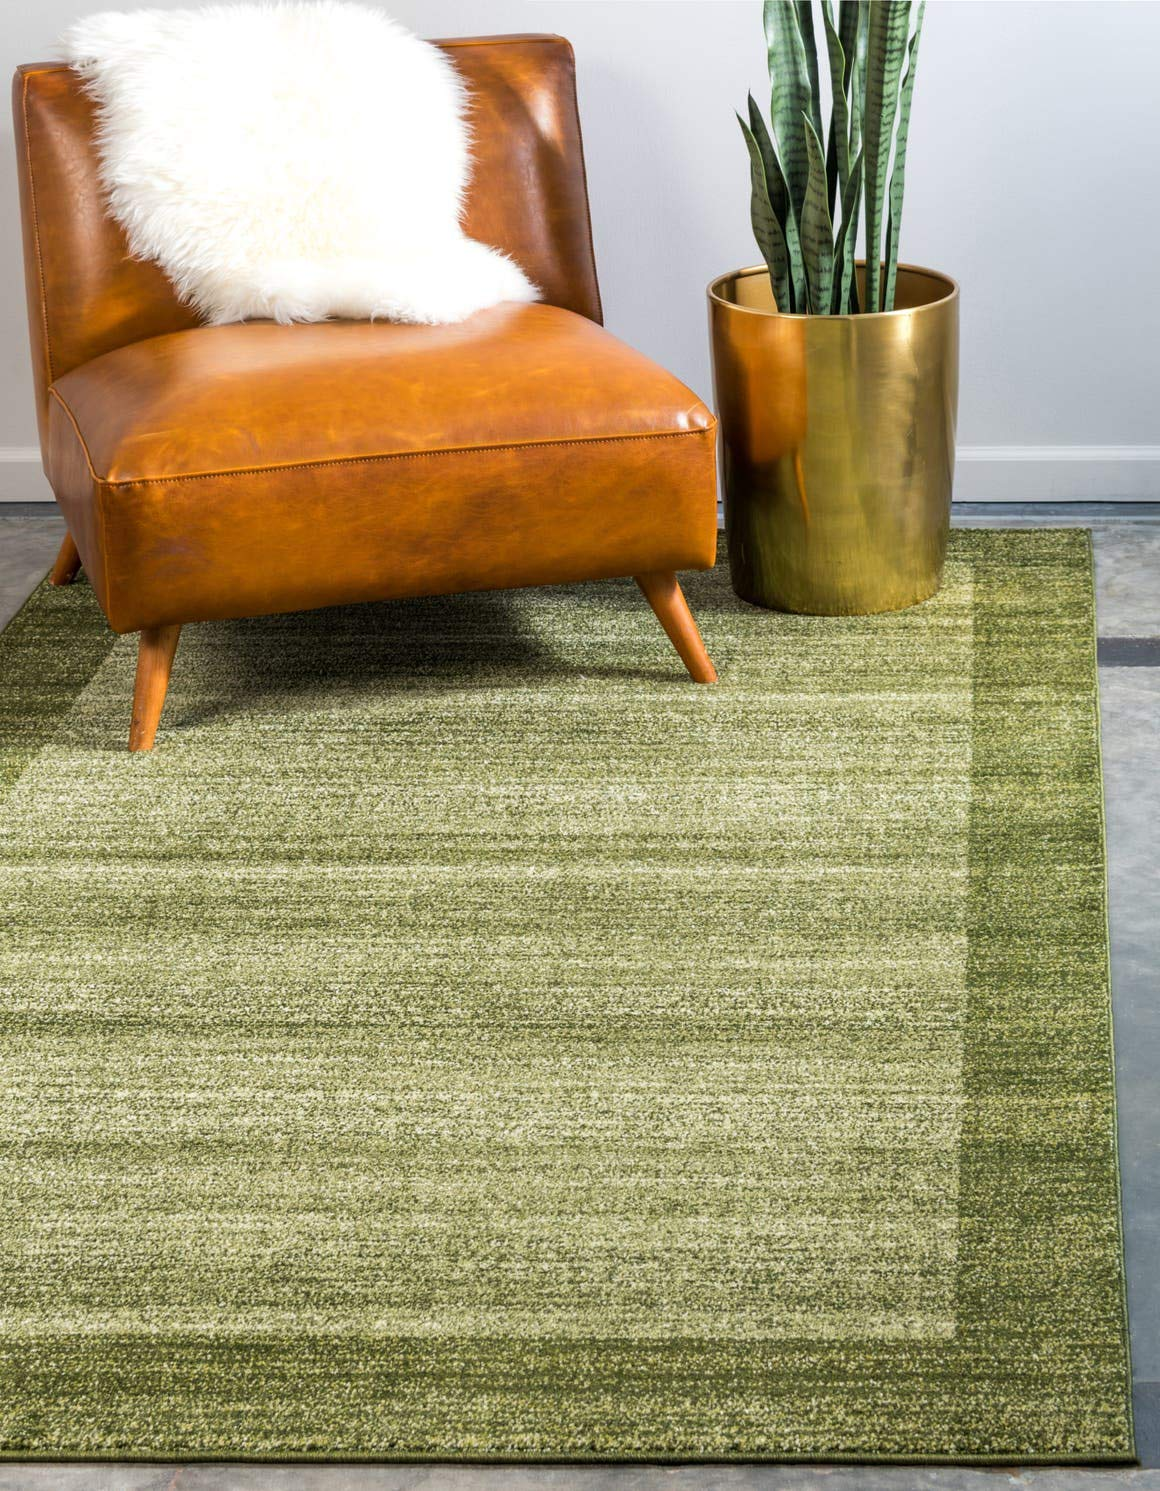 Unique Loom Del Mar Collection Contemporary Transitional Light Green Area Rug 5 0 x 8 0